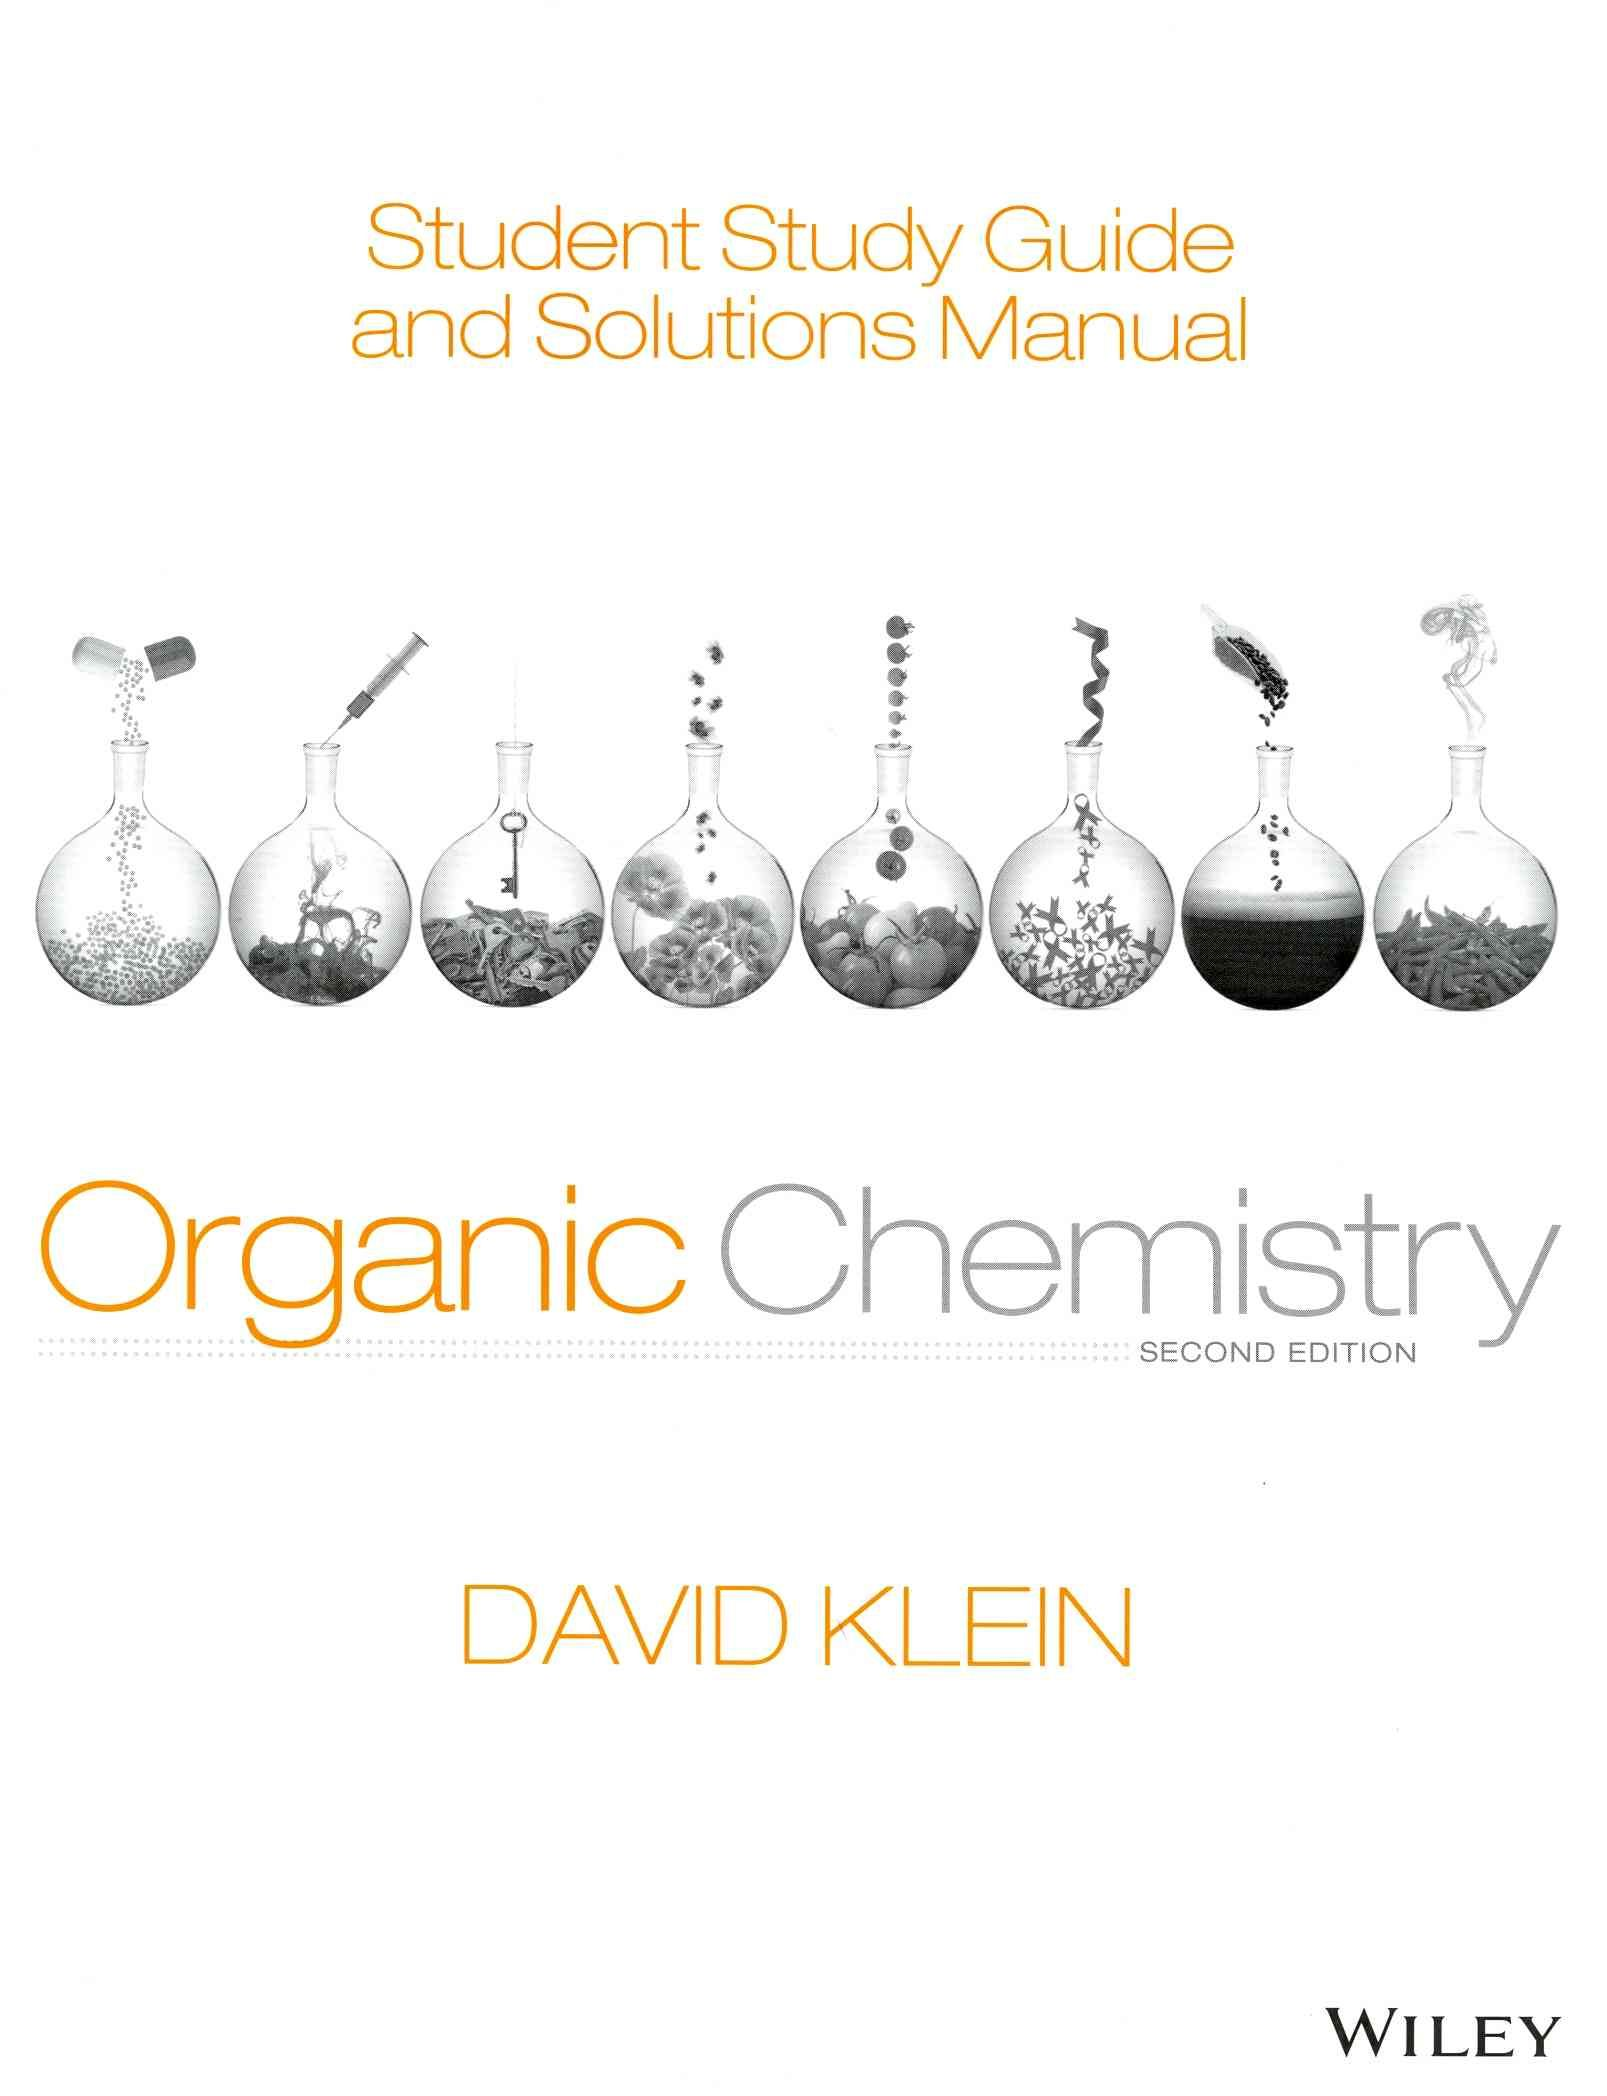 Organic Chemistry | Klein | Pinterest | Organic chemistry, Chemistry and  Book outlet